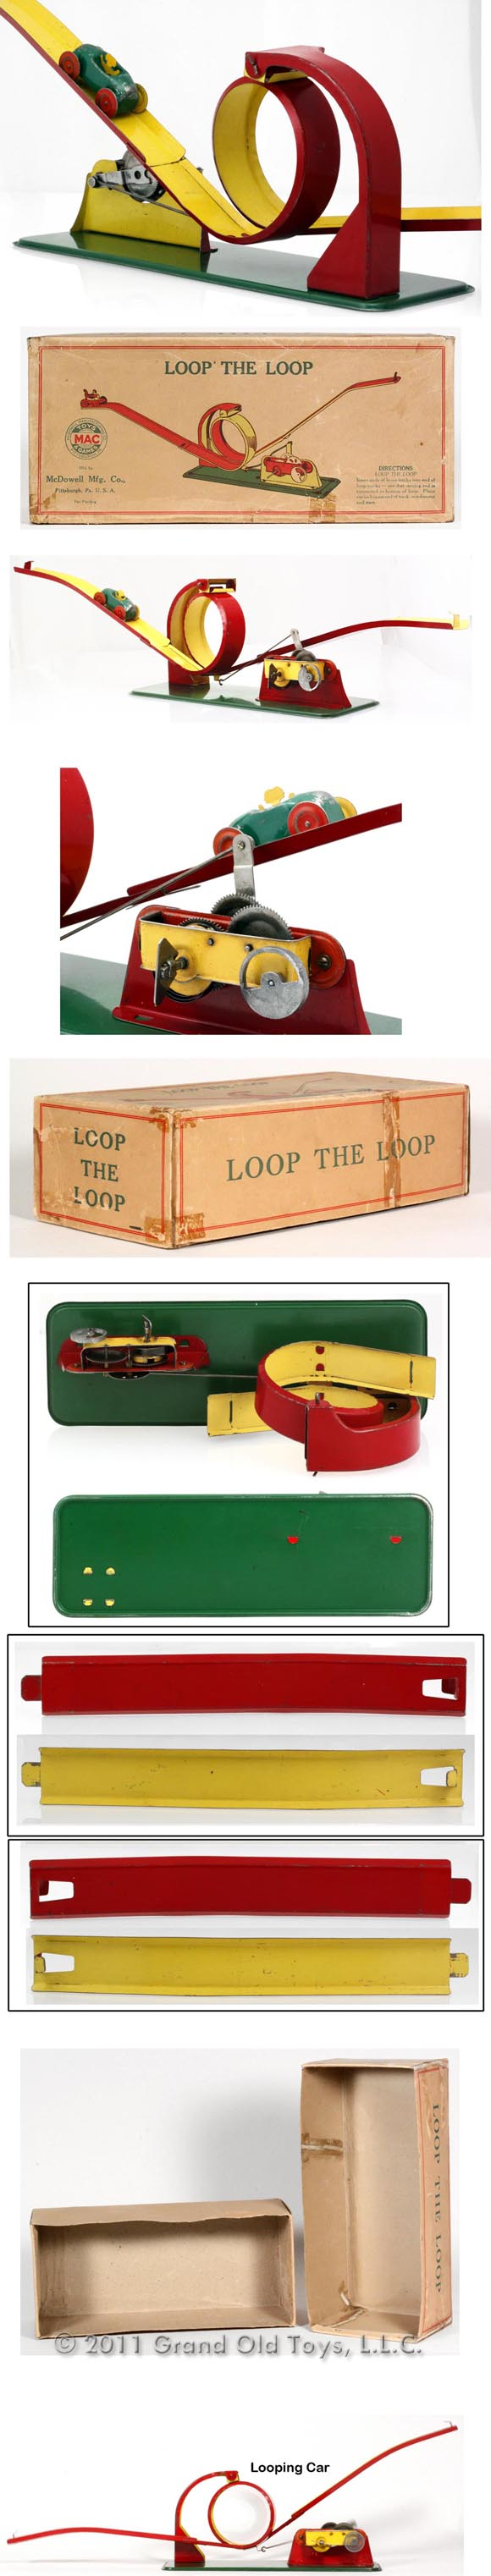 1925 McDowell, Loop The Loop In Original Box